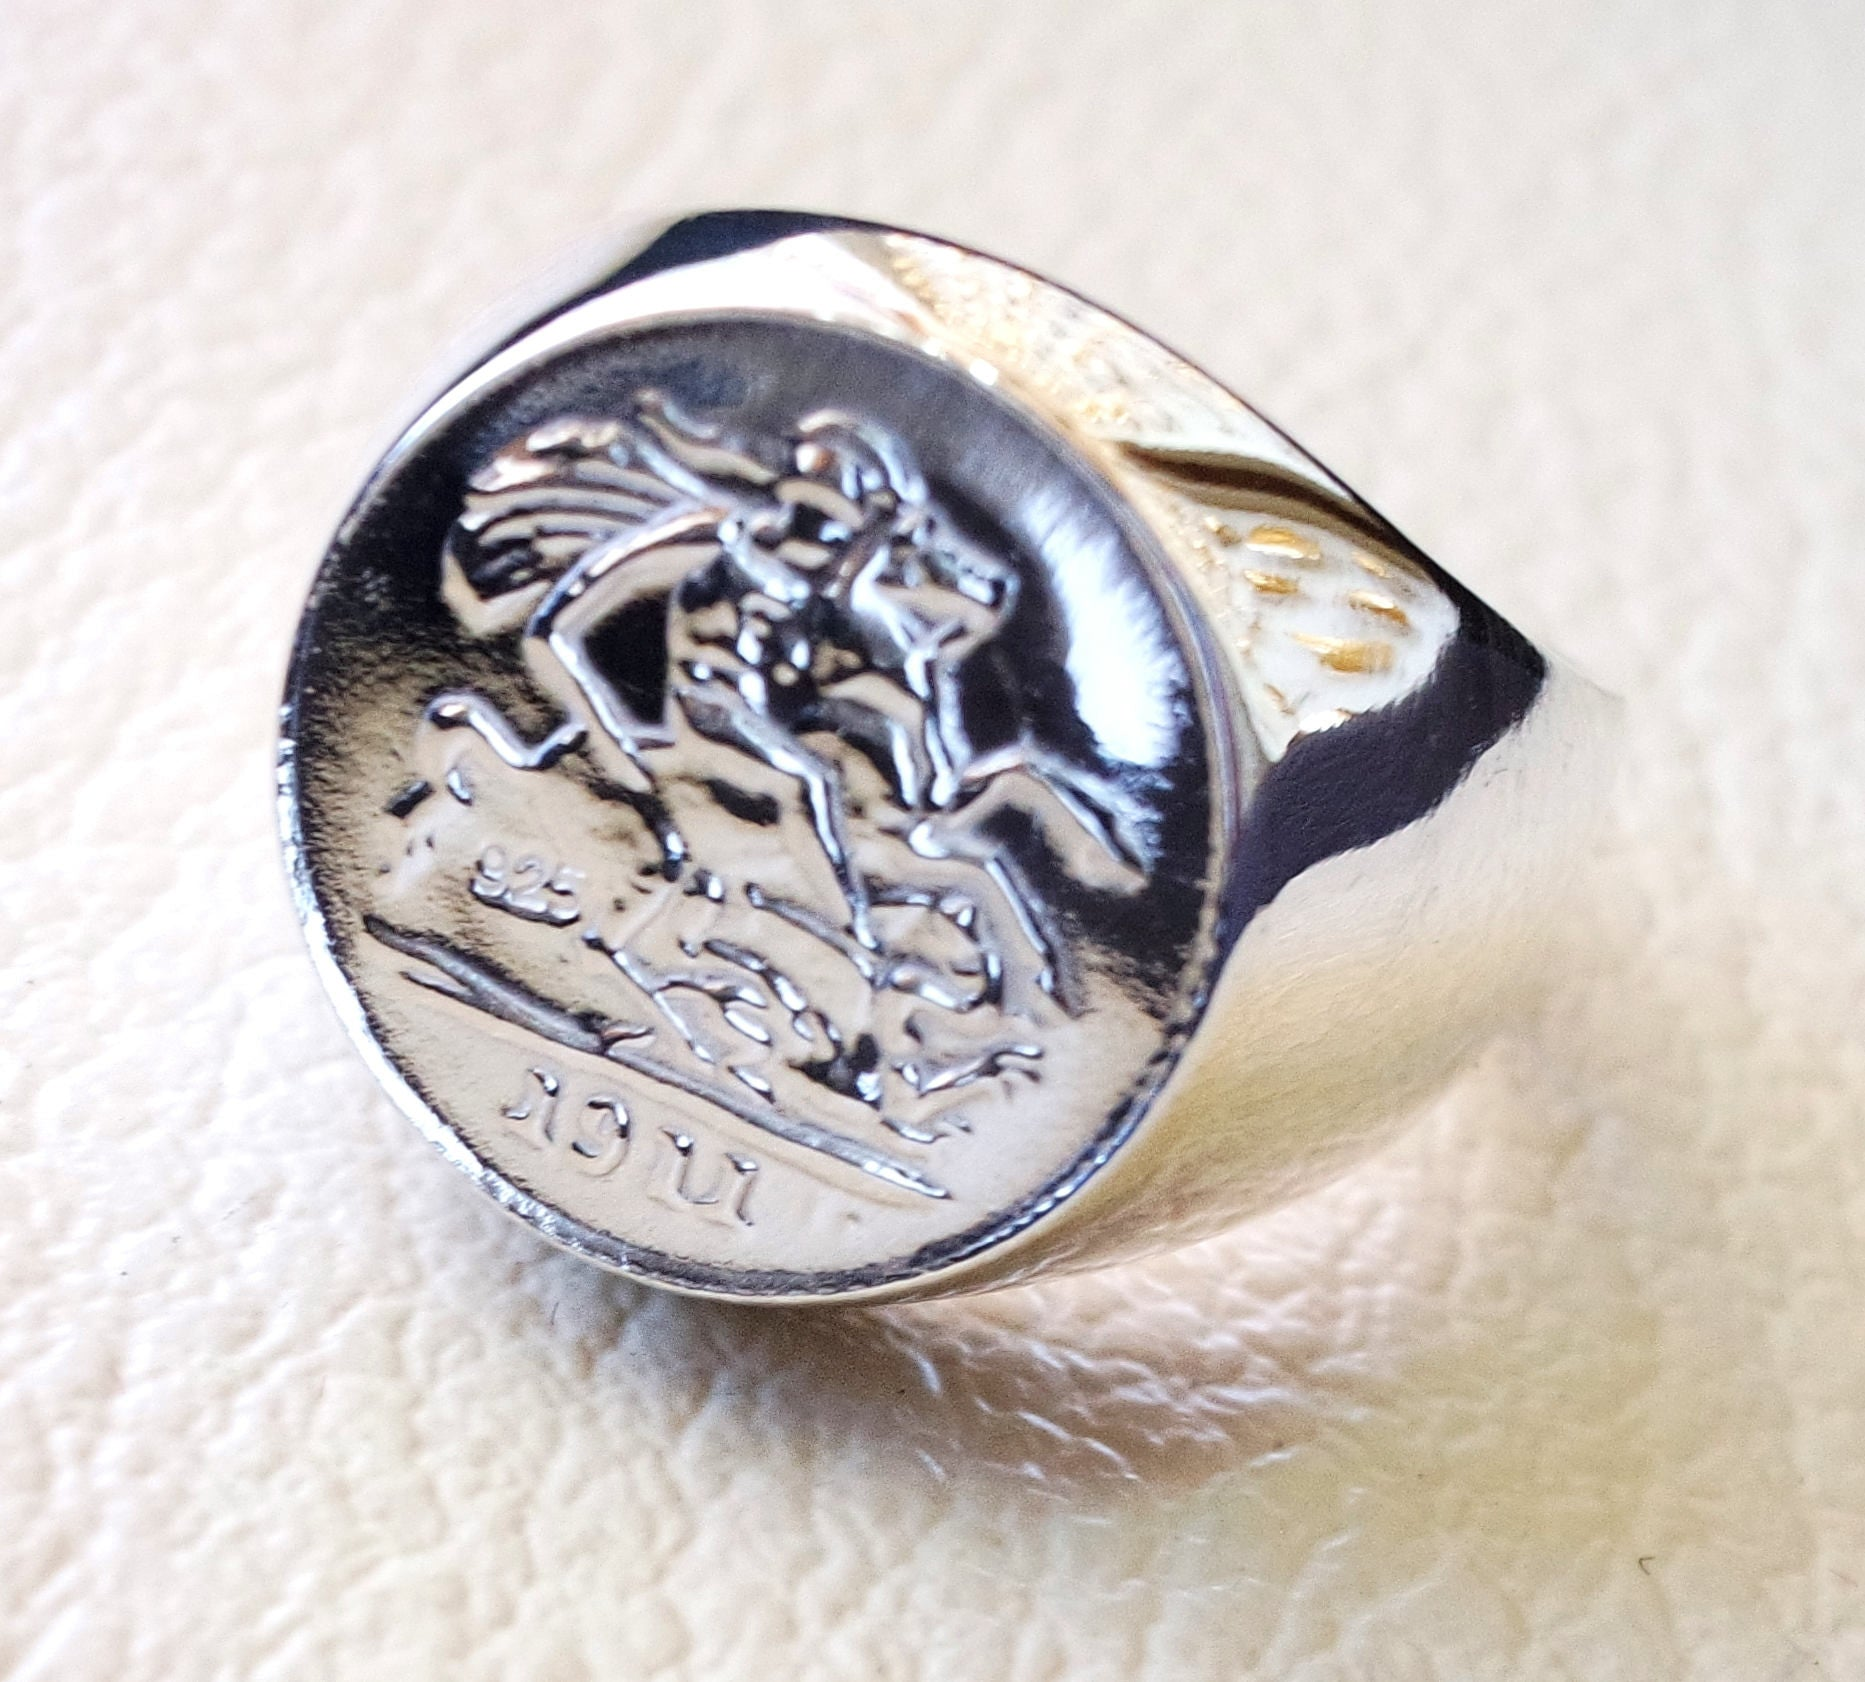 English silver coin heavy man ring round sterling silver 925 historical British replica quarter coin size close back all sizes jewelry